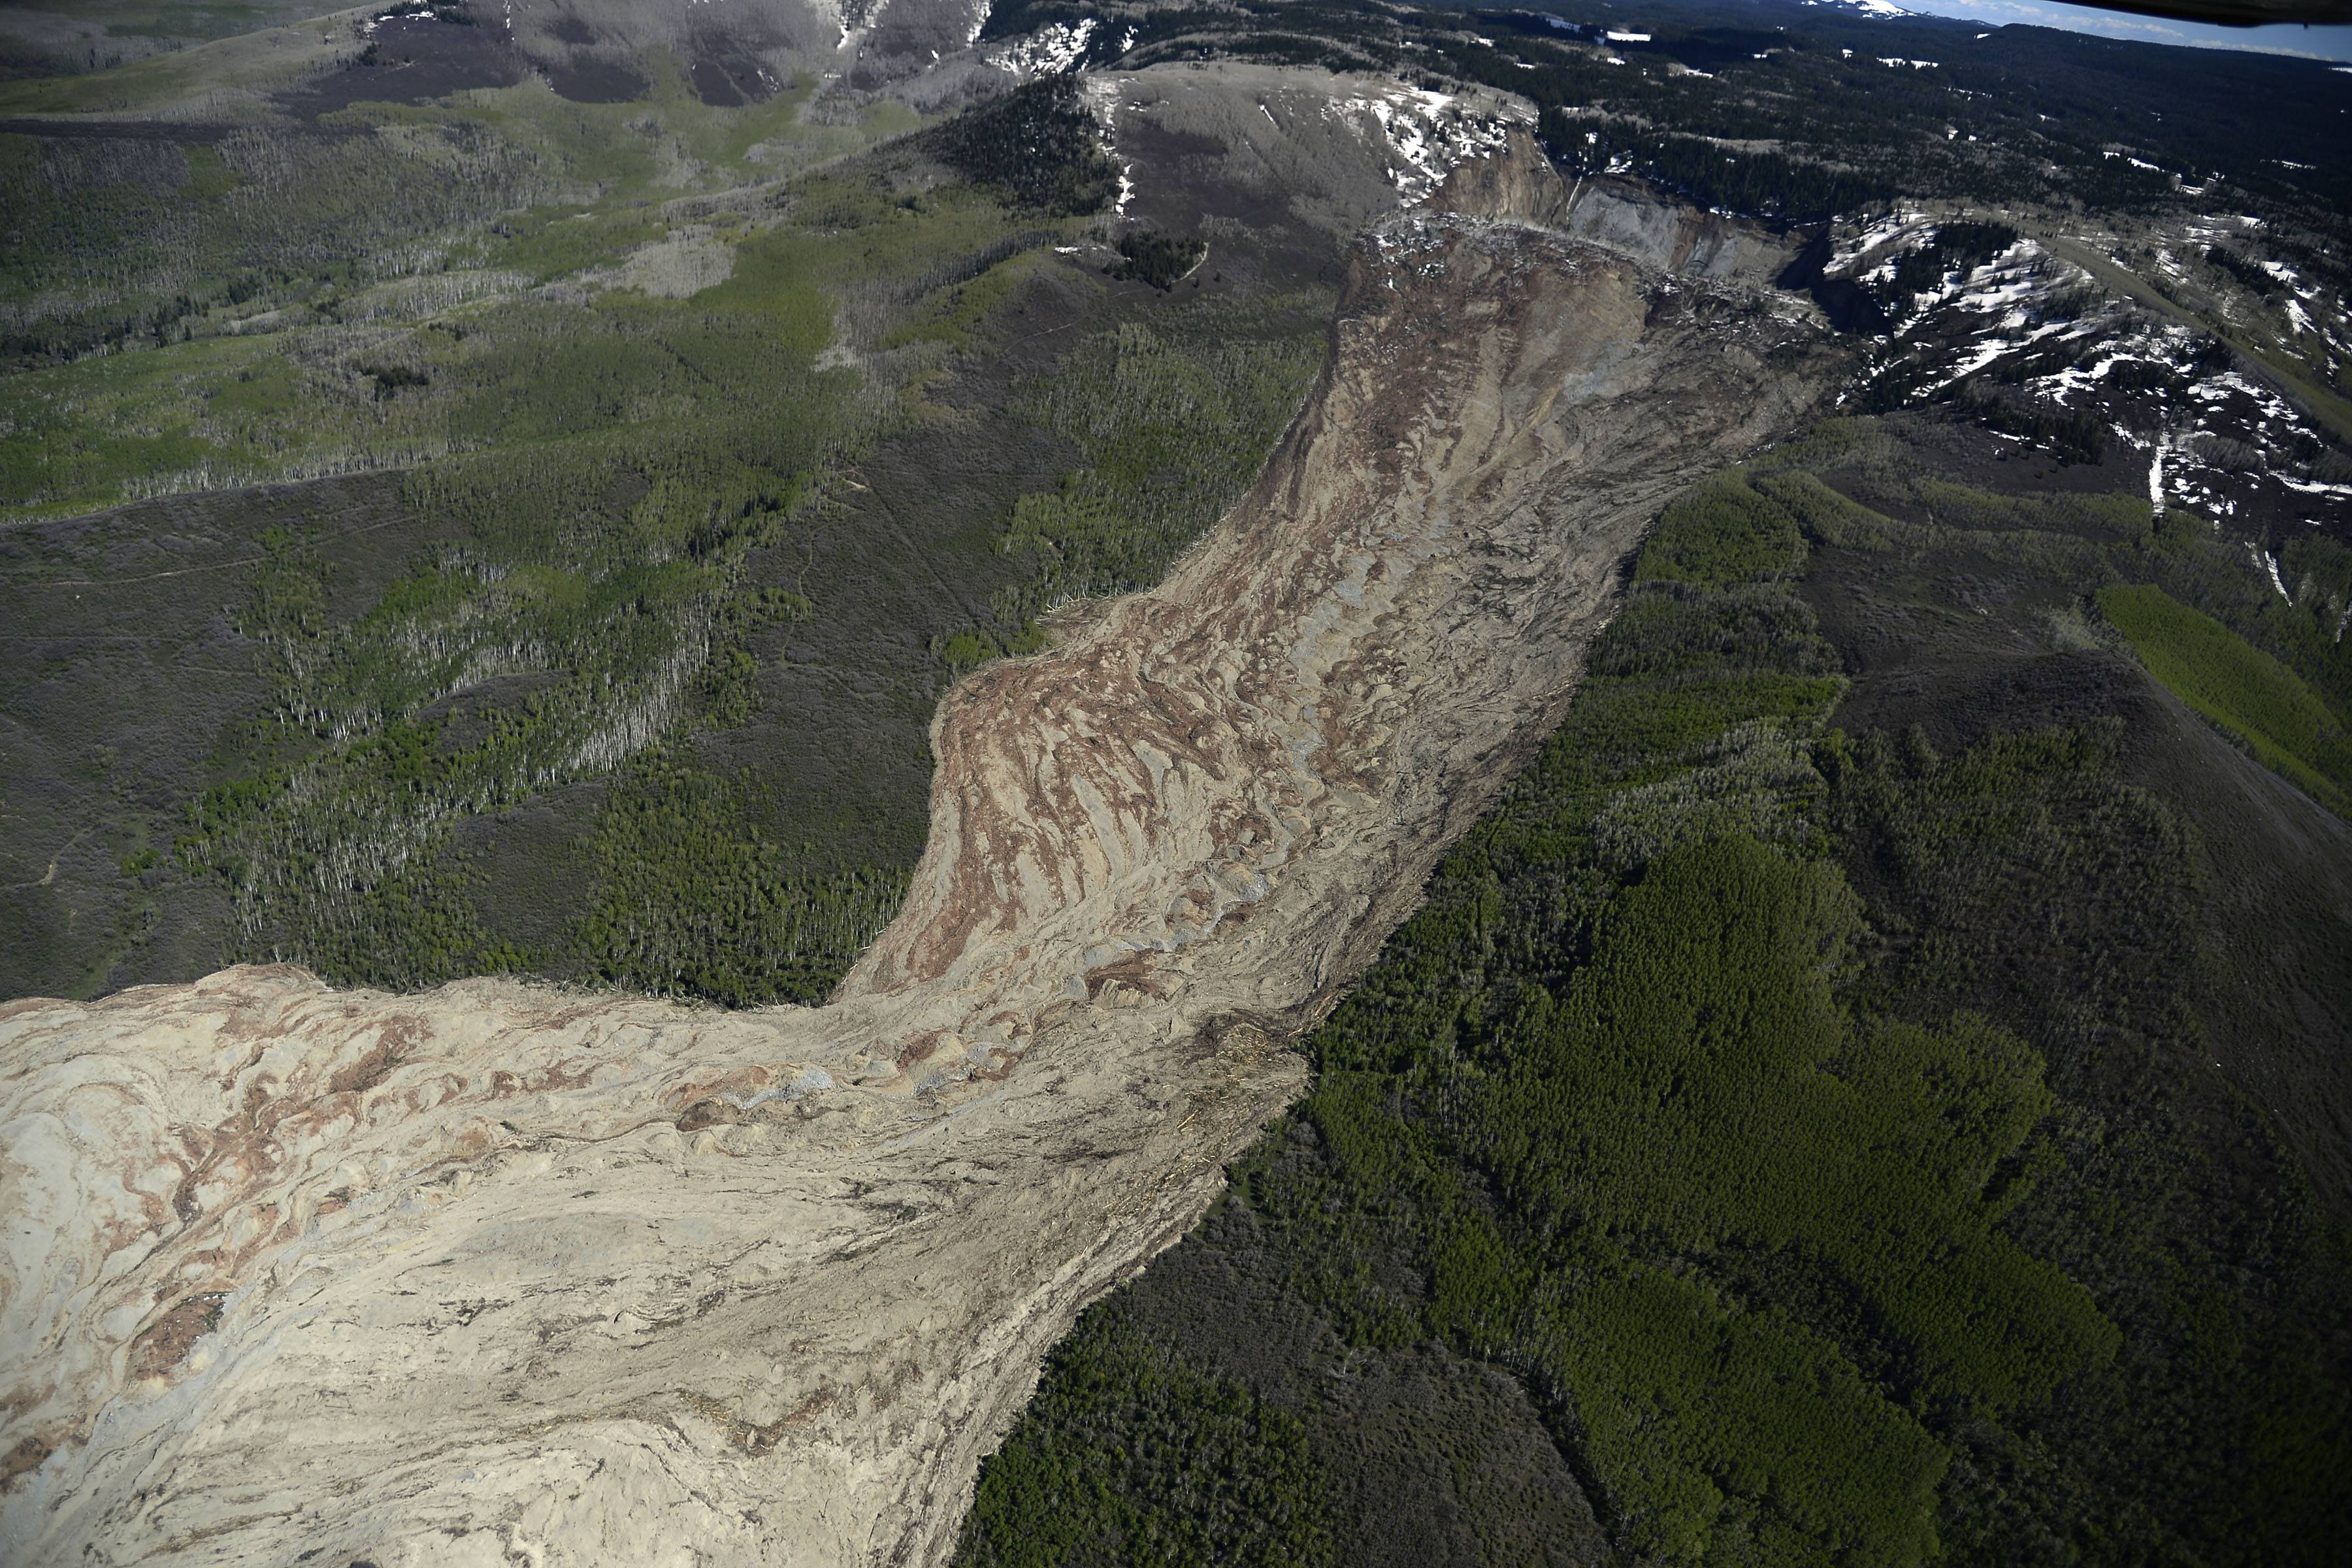 3 missing in Colorado mudslide were investigating